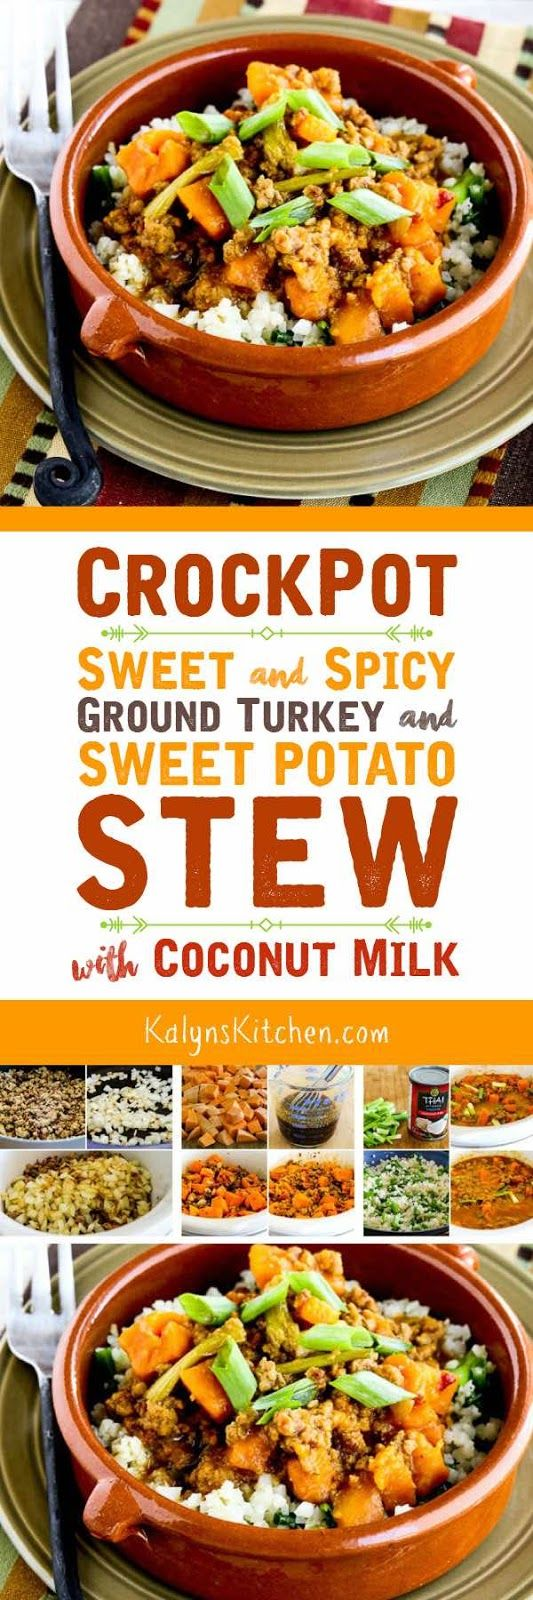 CrockPot Sweet and Spicy Ground Turkey and Sweet Potato Stew with Coconut Milk is a delicious slow cooker dish that cooks in about three hours. Serve over cauliflower rice or brown rice for a dinner that's low-glycemic, dairy-free, gluten-free, and South Beach Diet Phase Two. [found on KalynsKitchen.com]